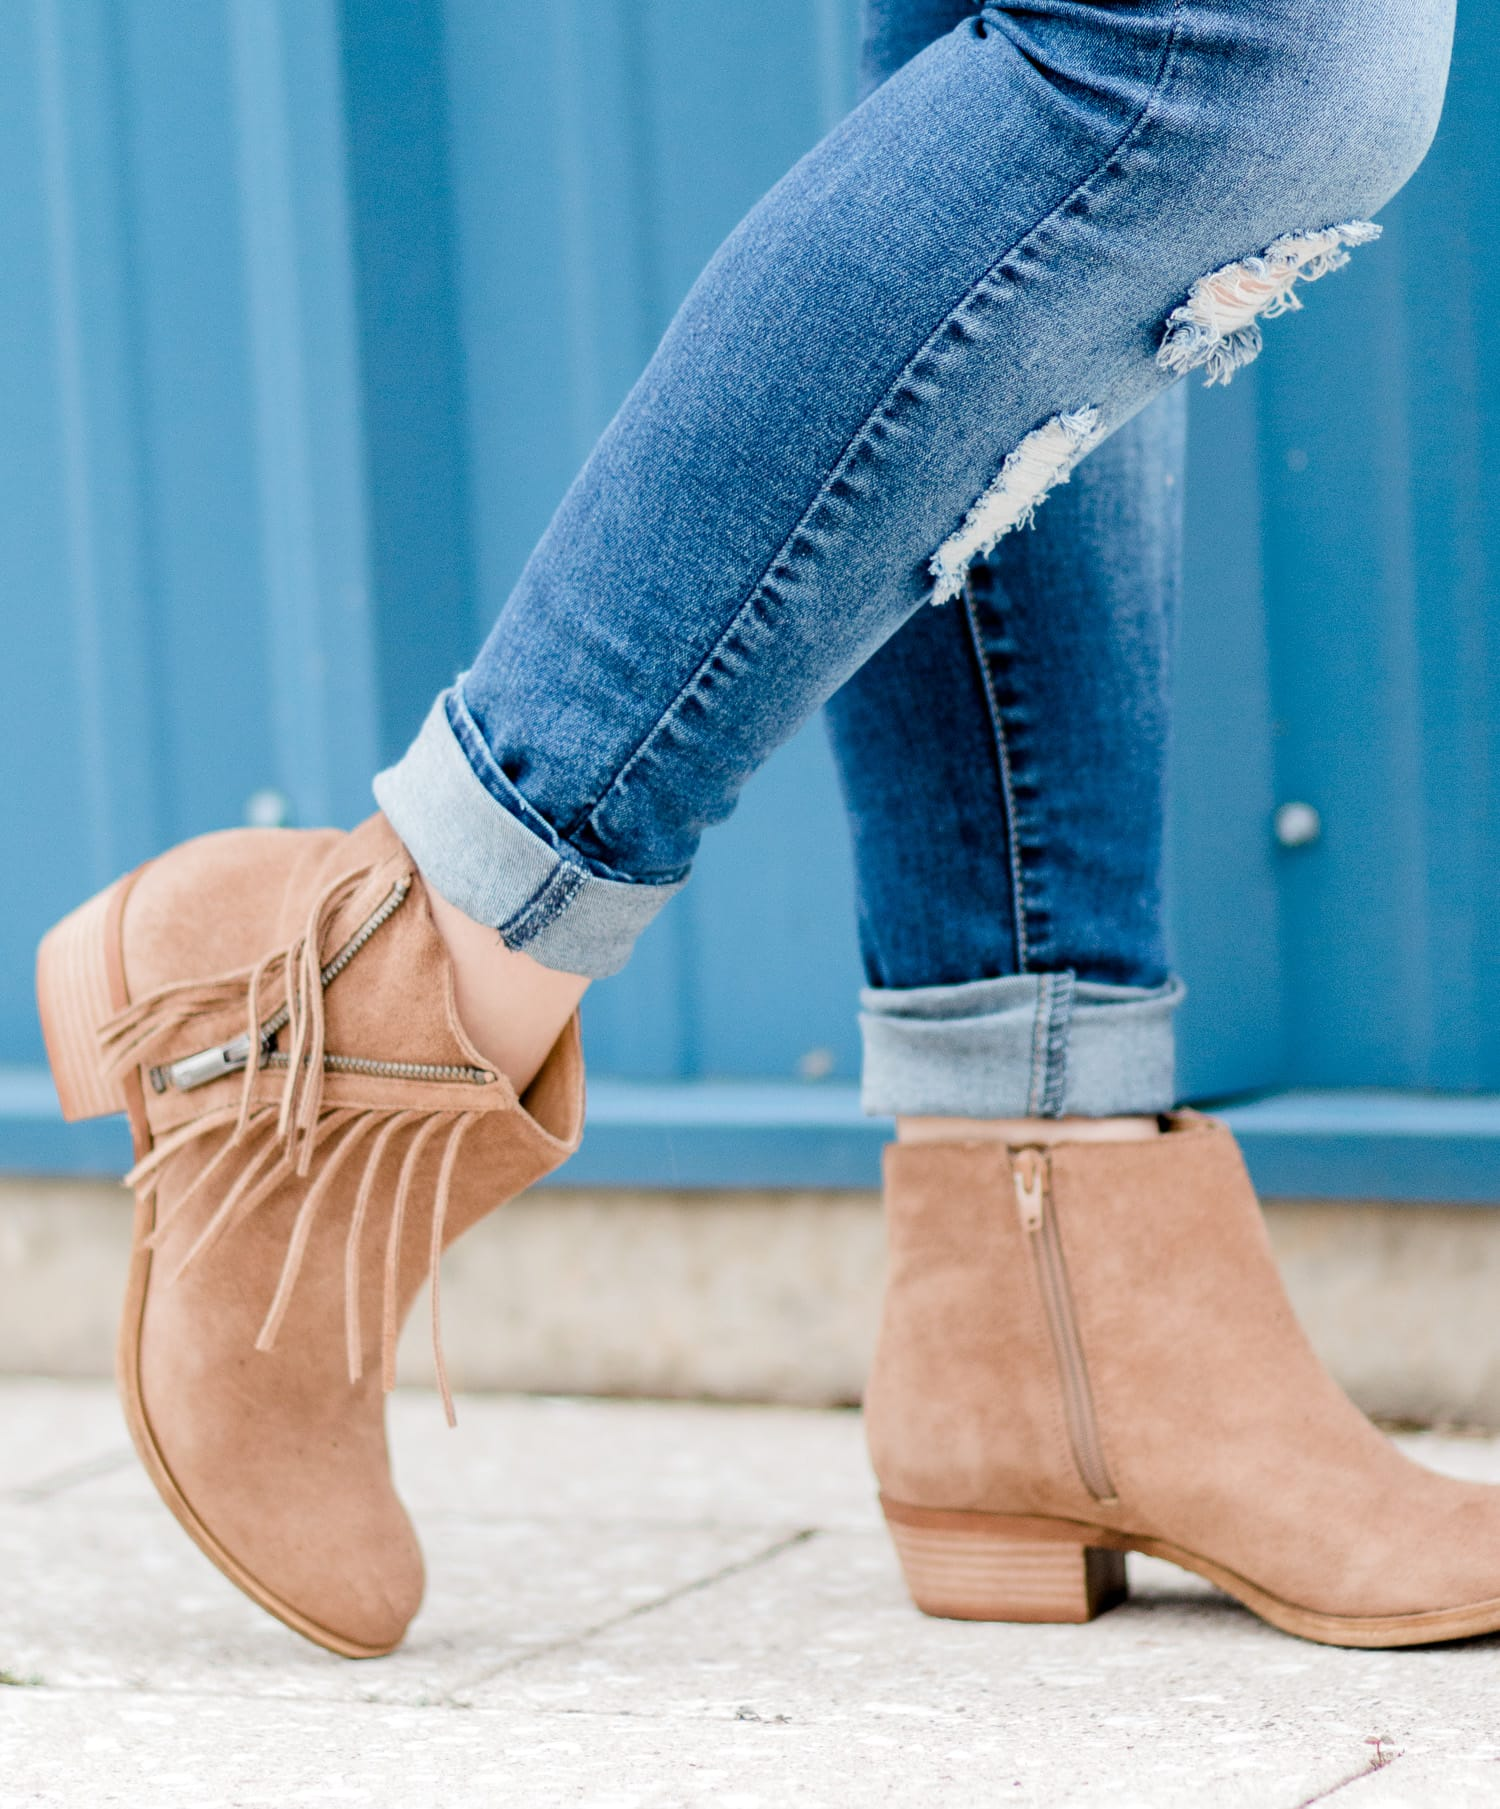 Lucky Brand Beeliner fringe booties with destroyed denim jeans styled by blogger Ashley Brooke Nicholas.